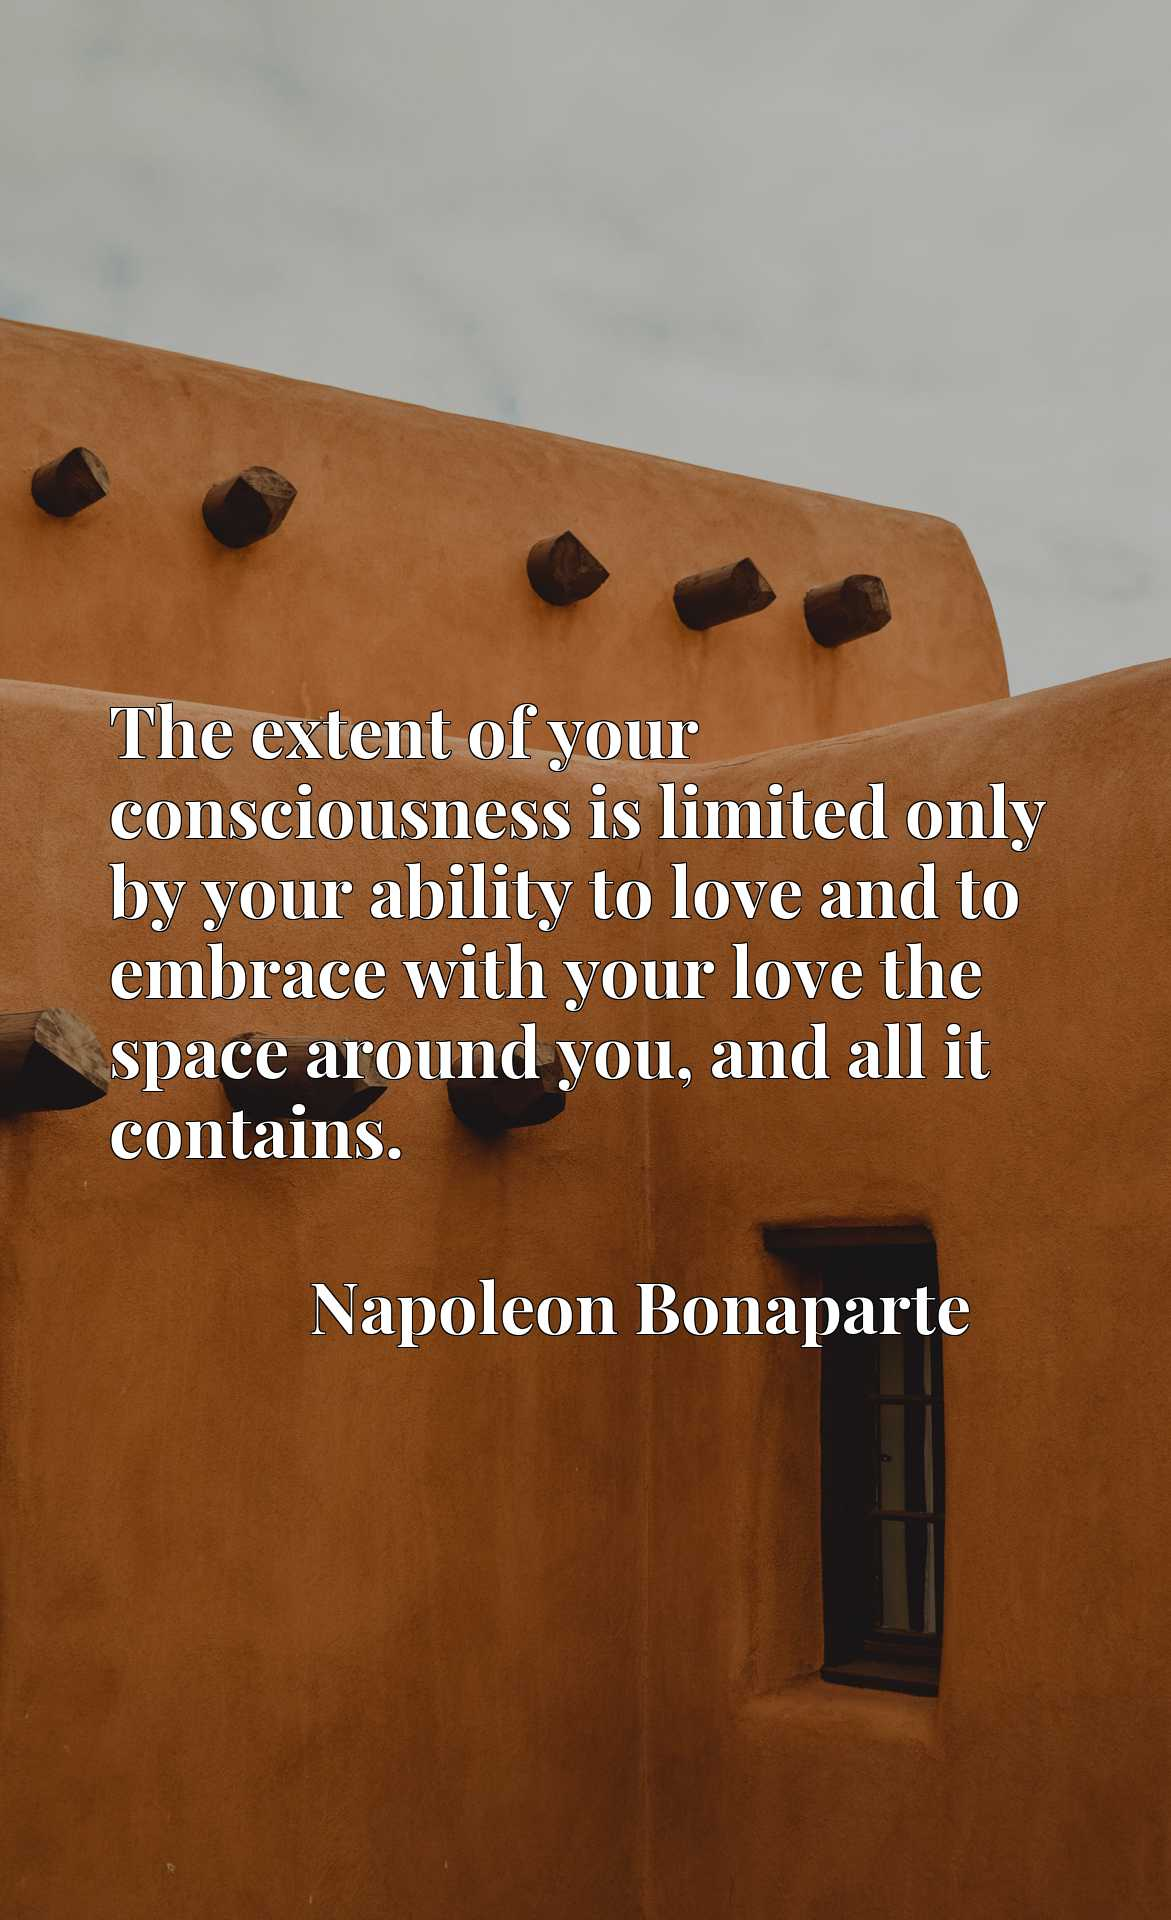 Quote Picture :The extent of your consciousness is limited only by your ability to love and to embrace with your love the space around you, and all it contains.